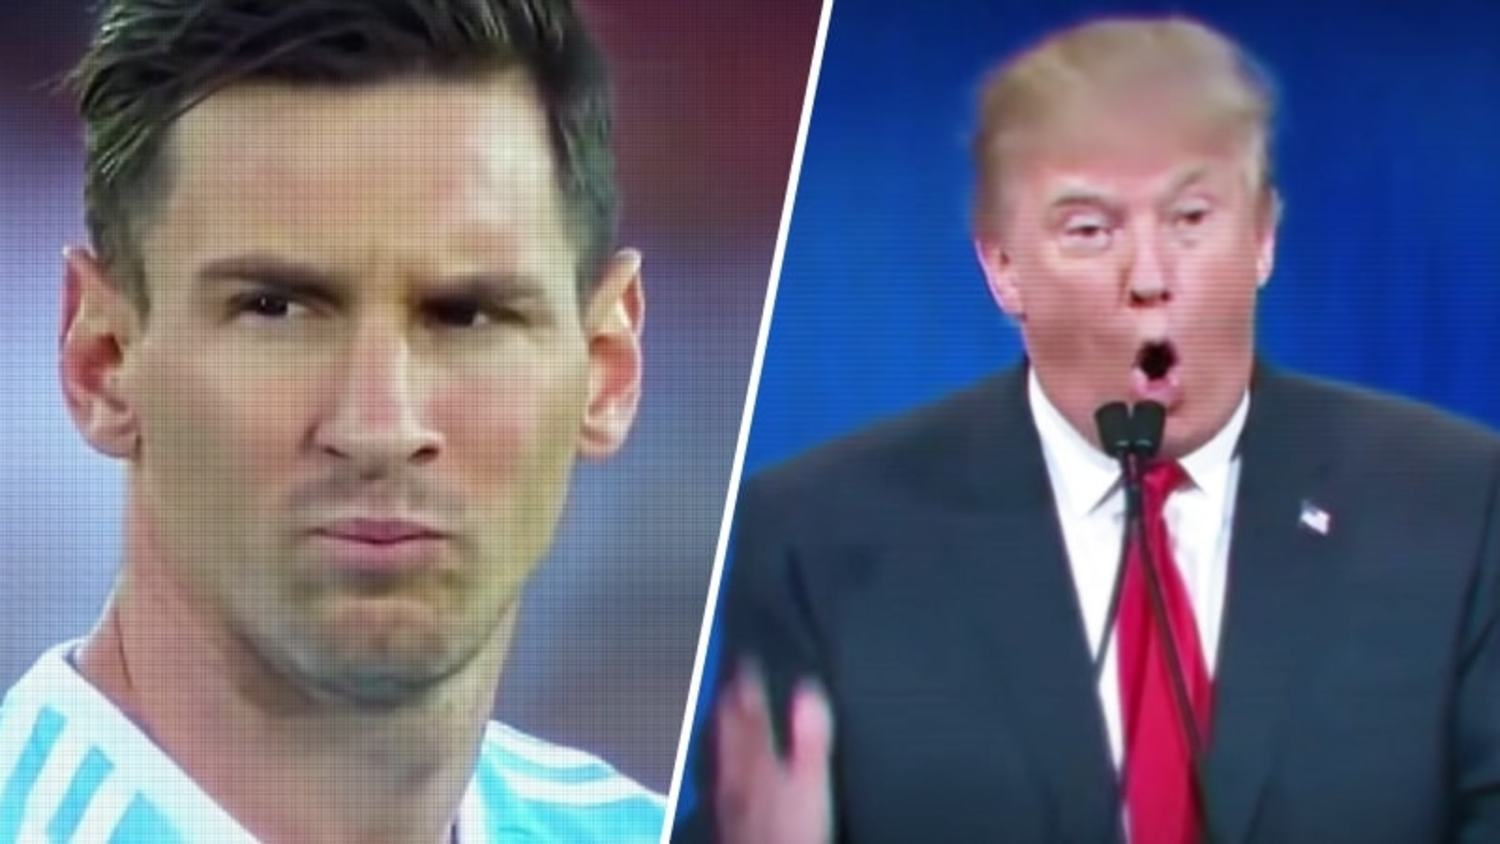 Argentina TV Channel Mocks Donald Trump in Hilarious Copa Centenario Video!